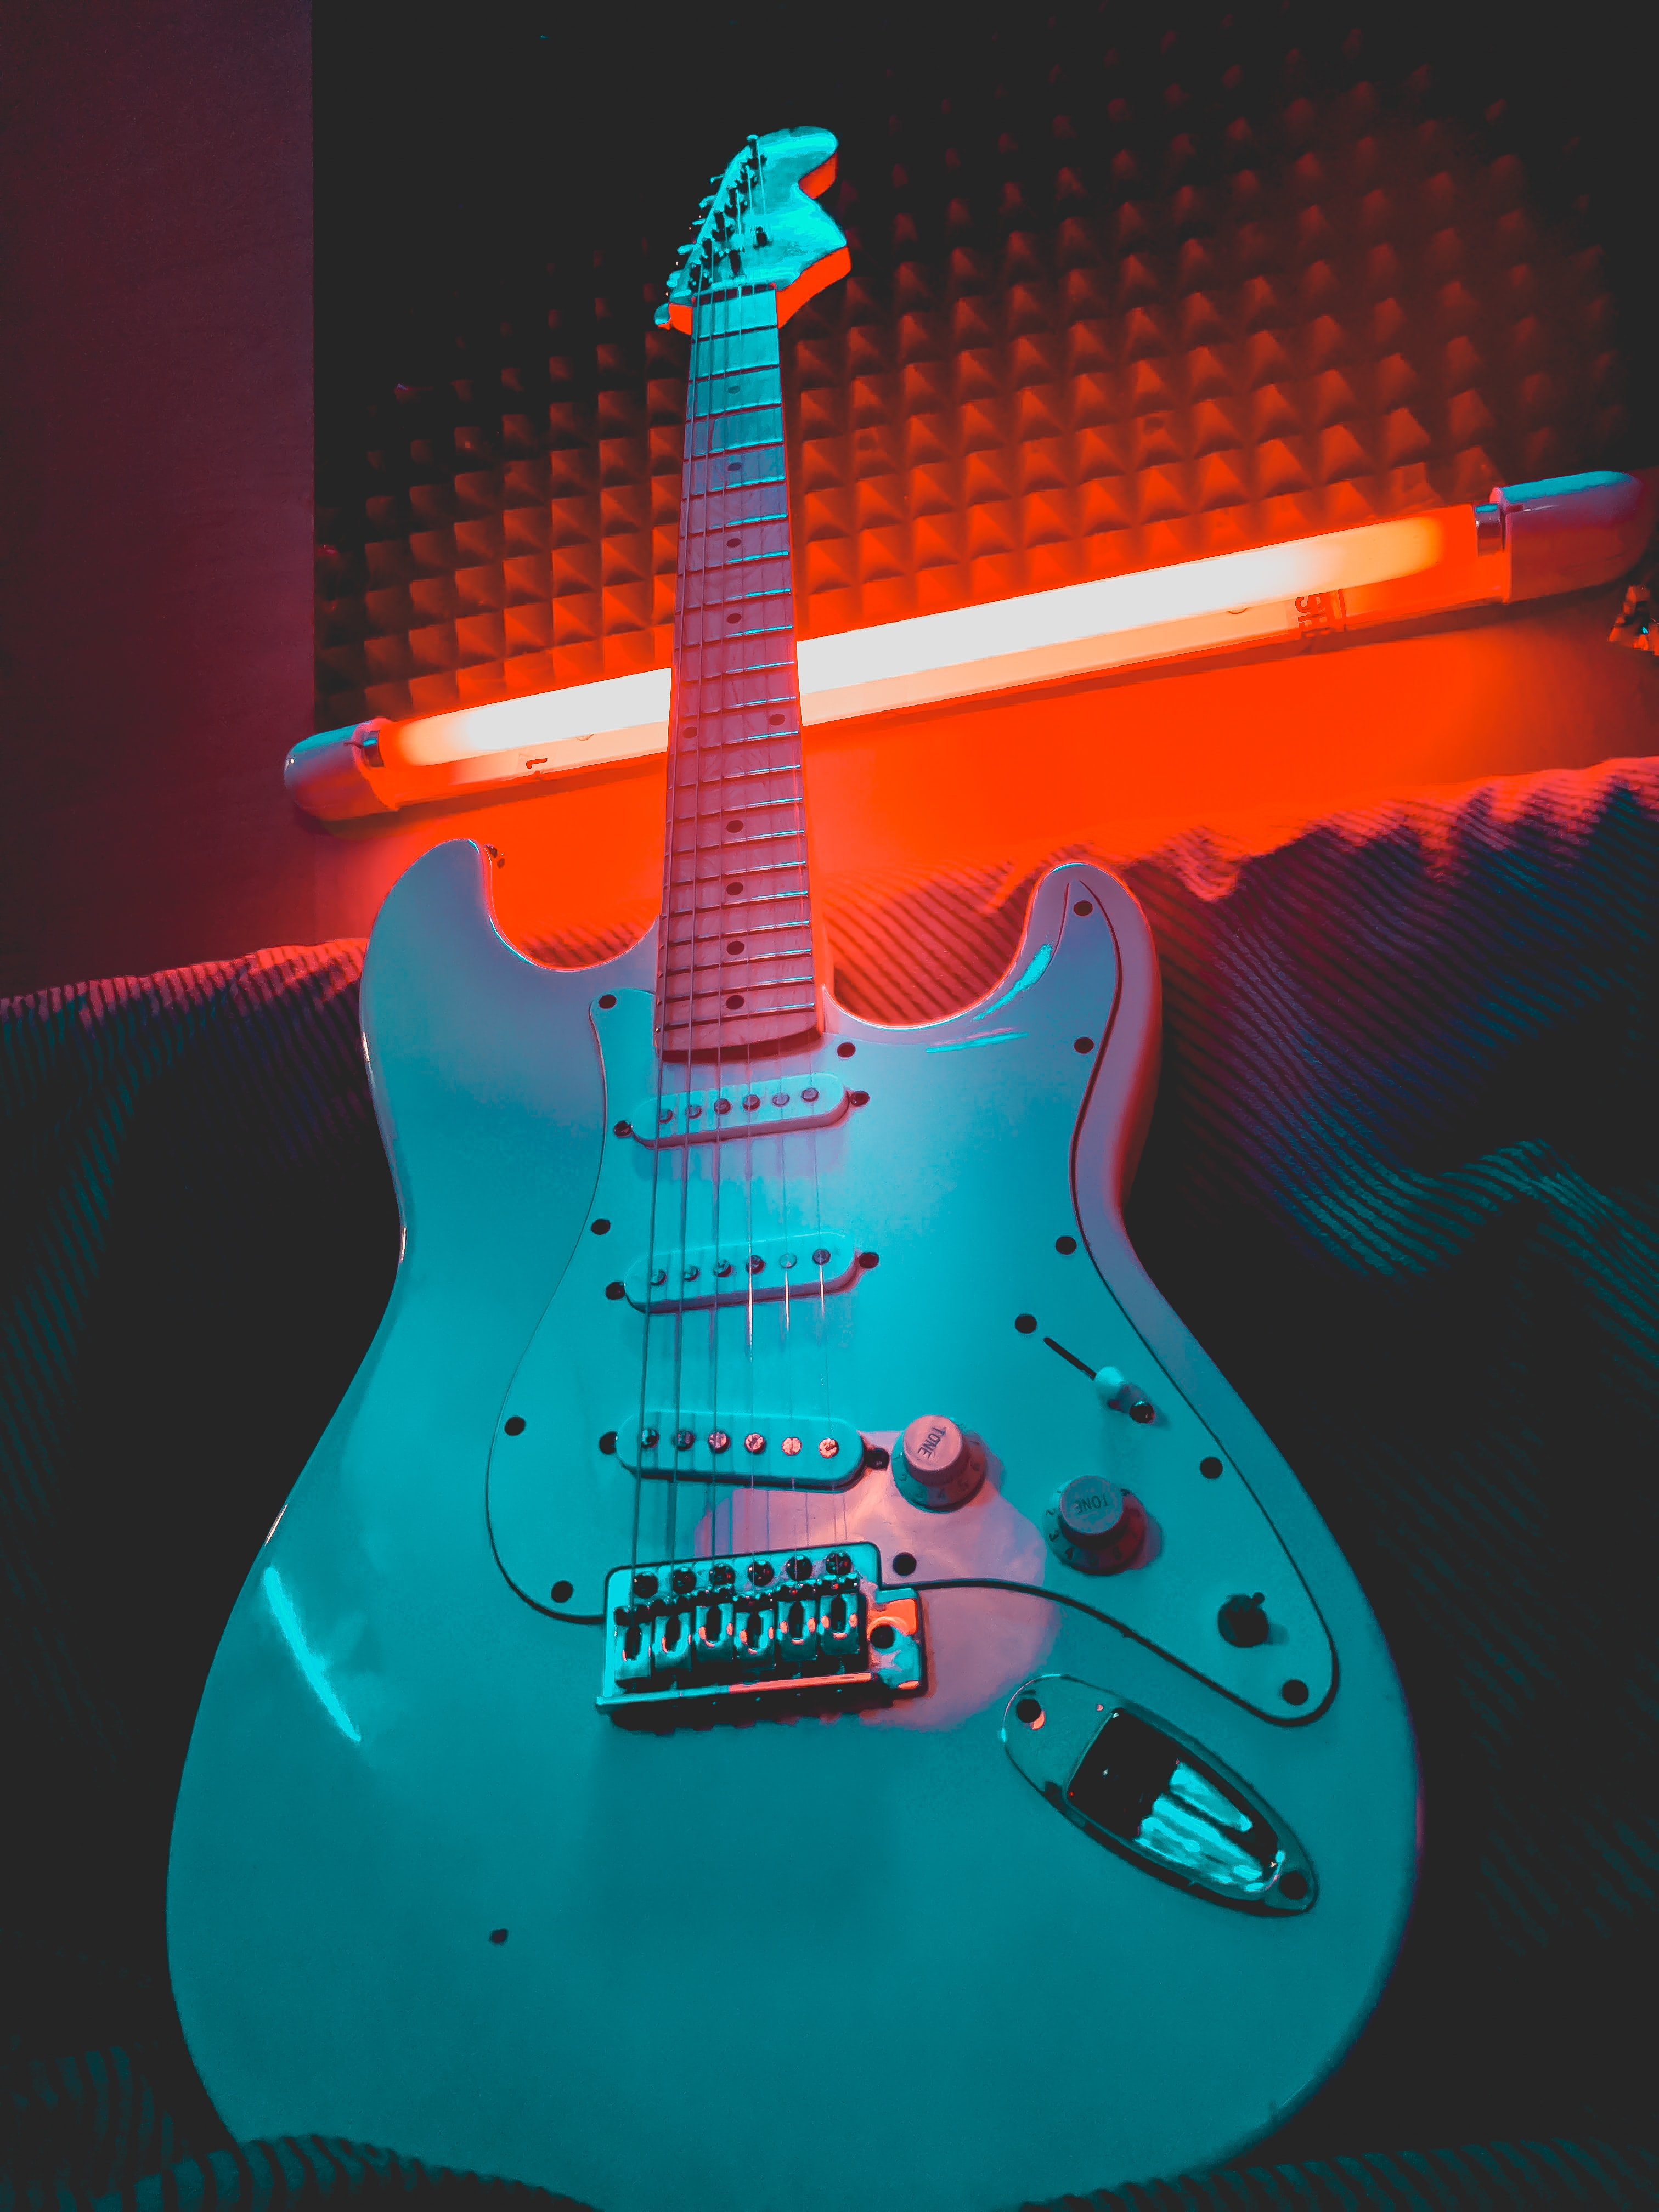 98402 download wallpaper Music, Electric Guitar, Guitar, Musical Instrument, Neon, Shine, Light screensavers and pictures for free